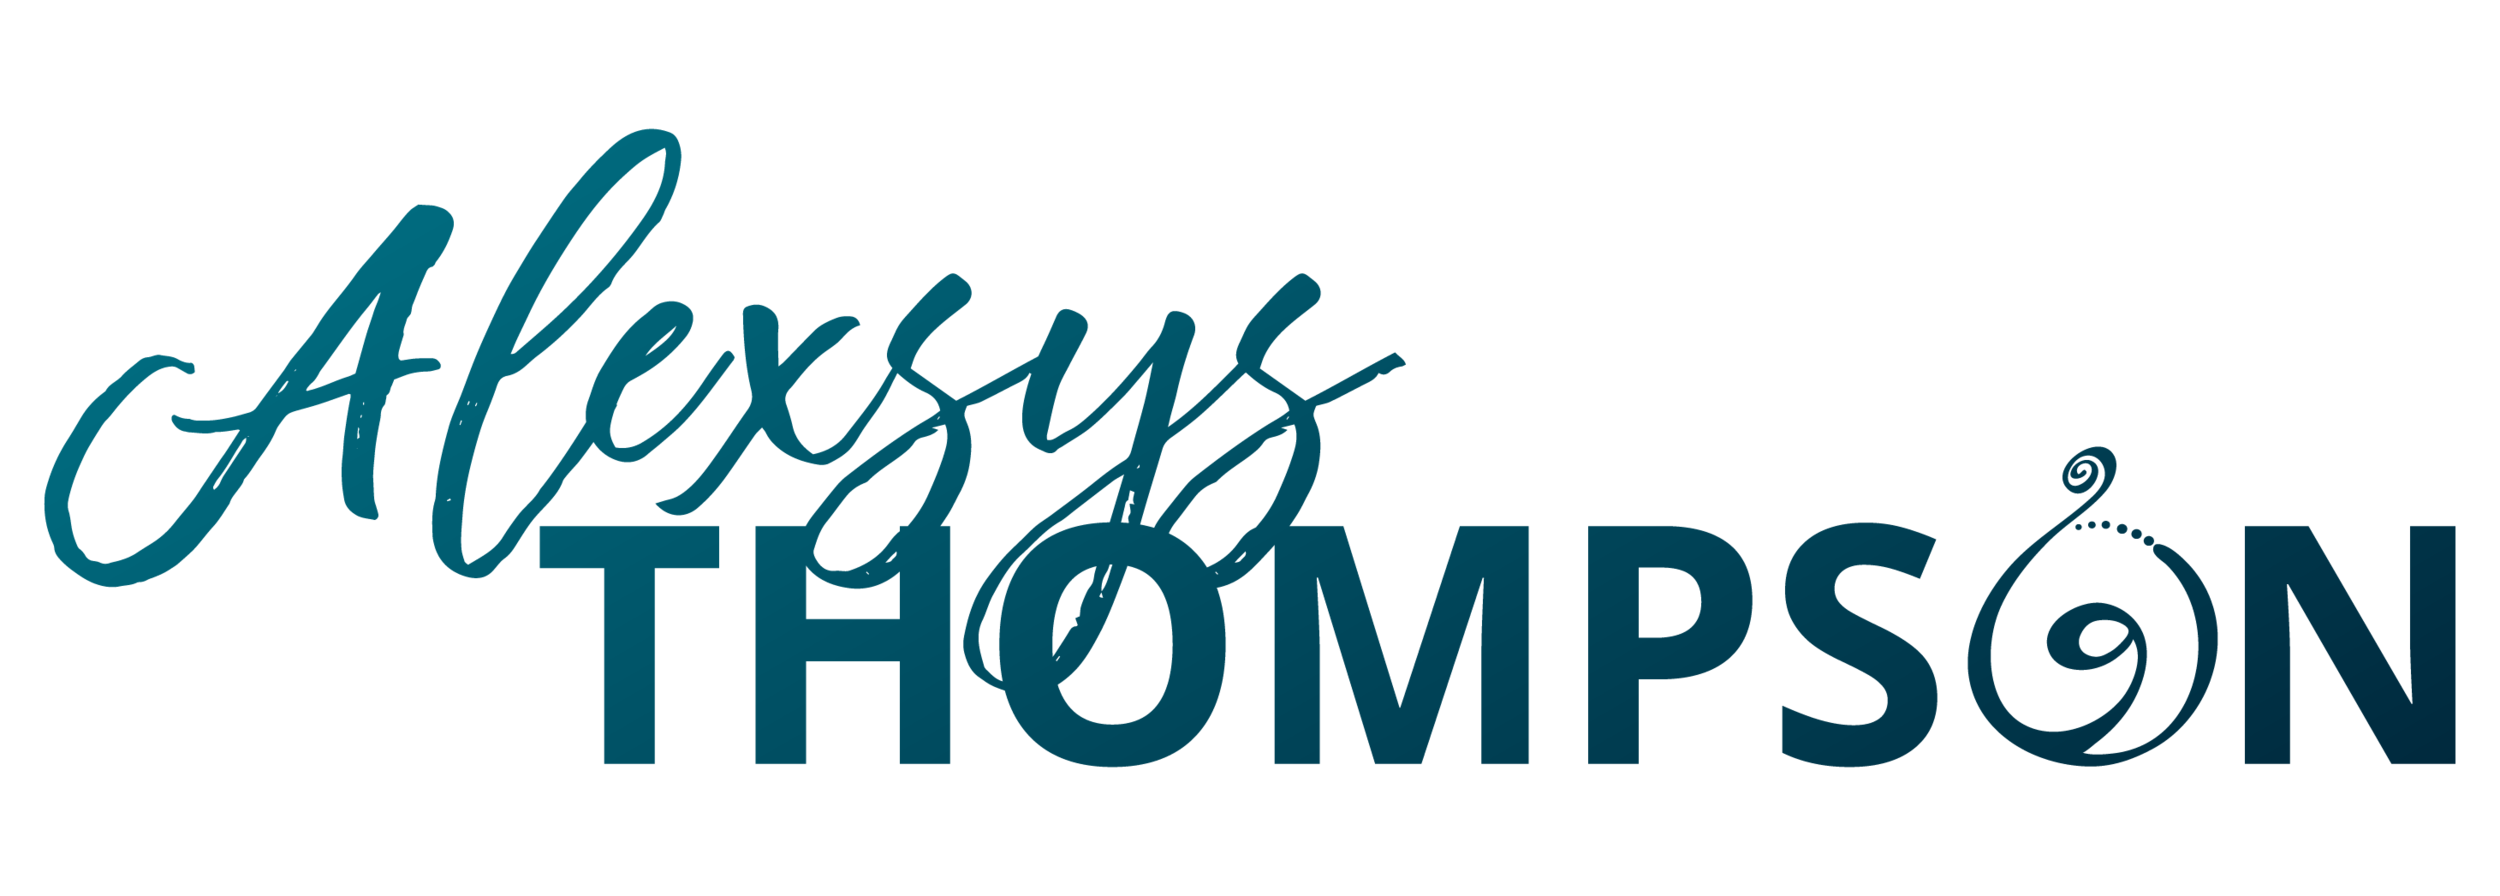 Alexsys Thompson Logo_Gradient.png